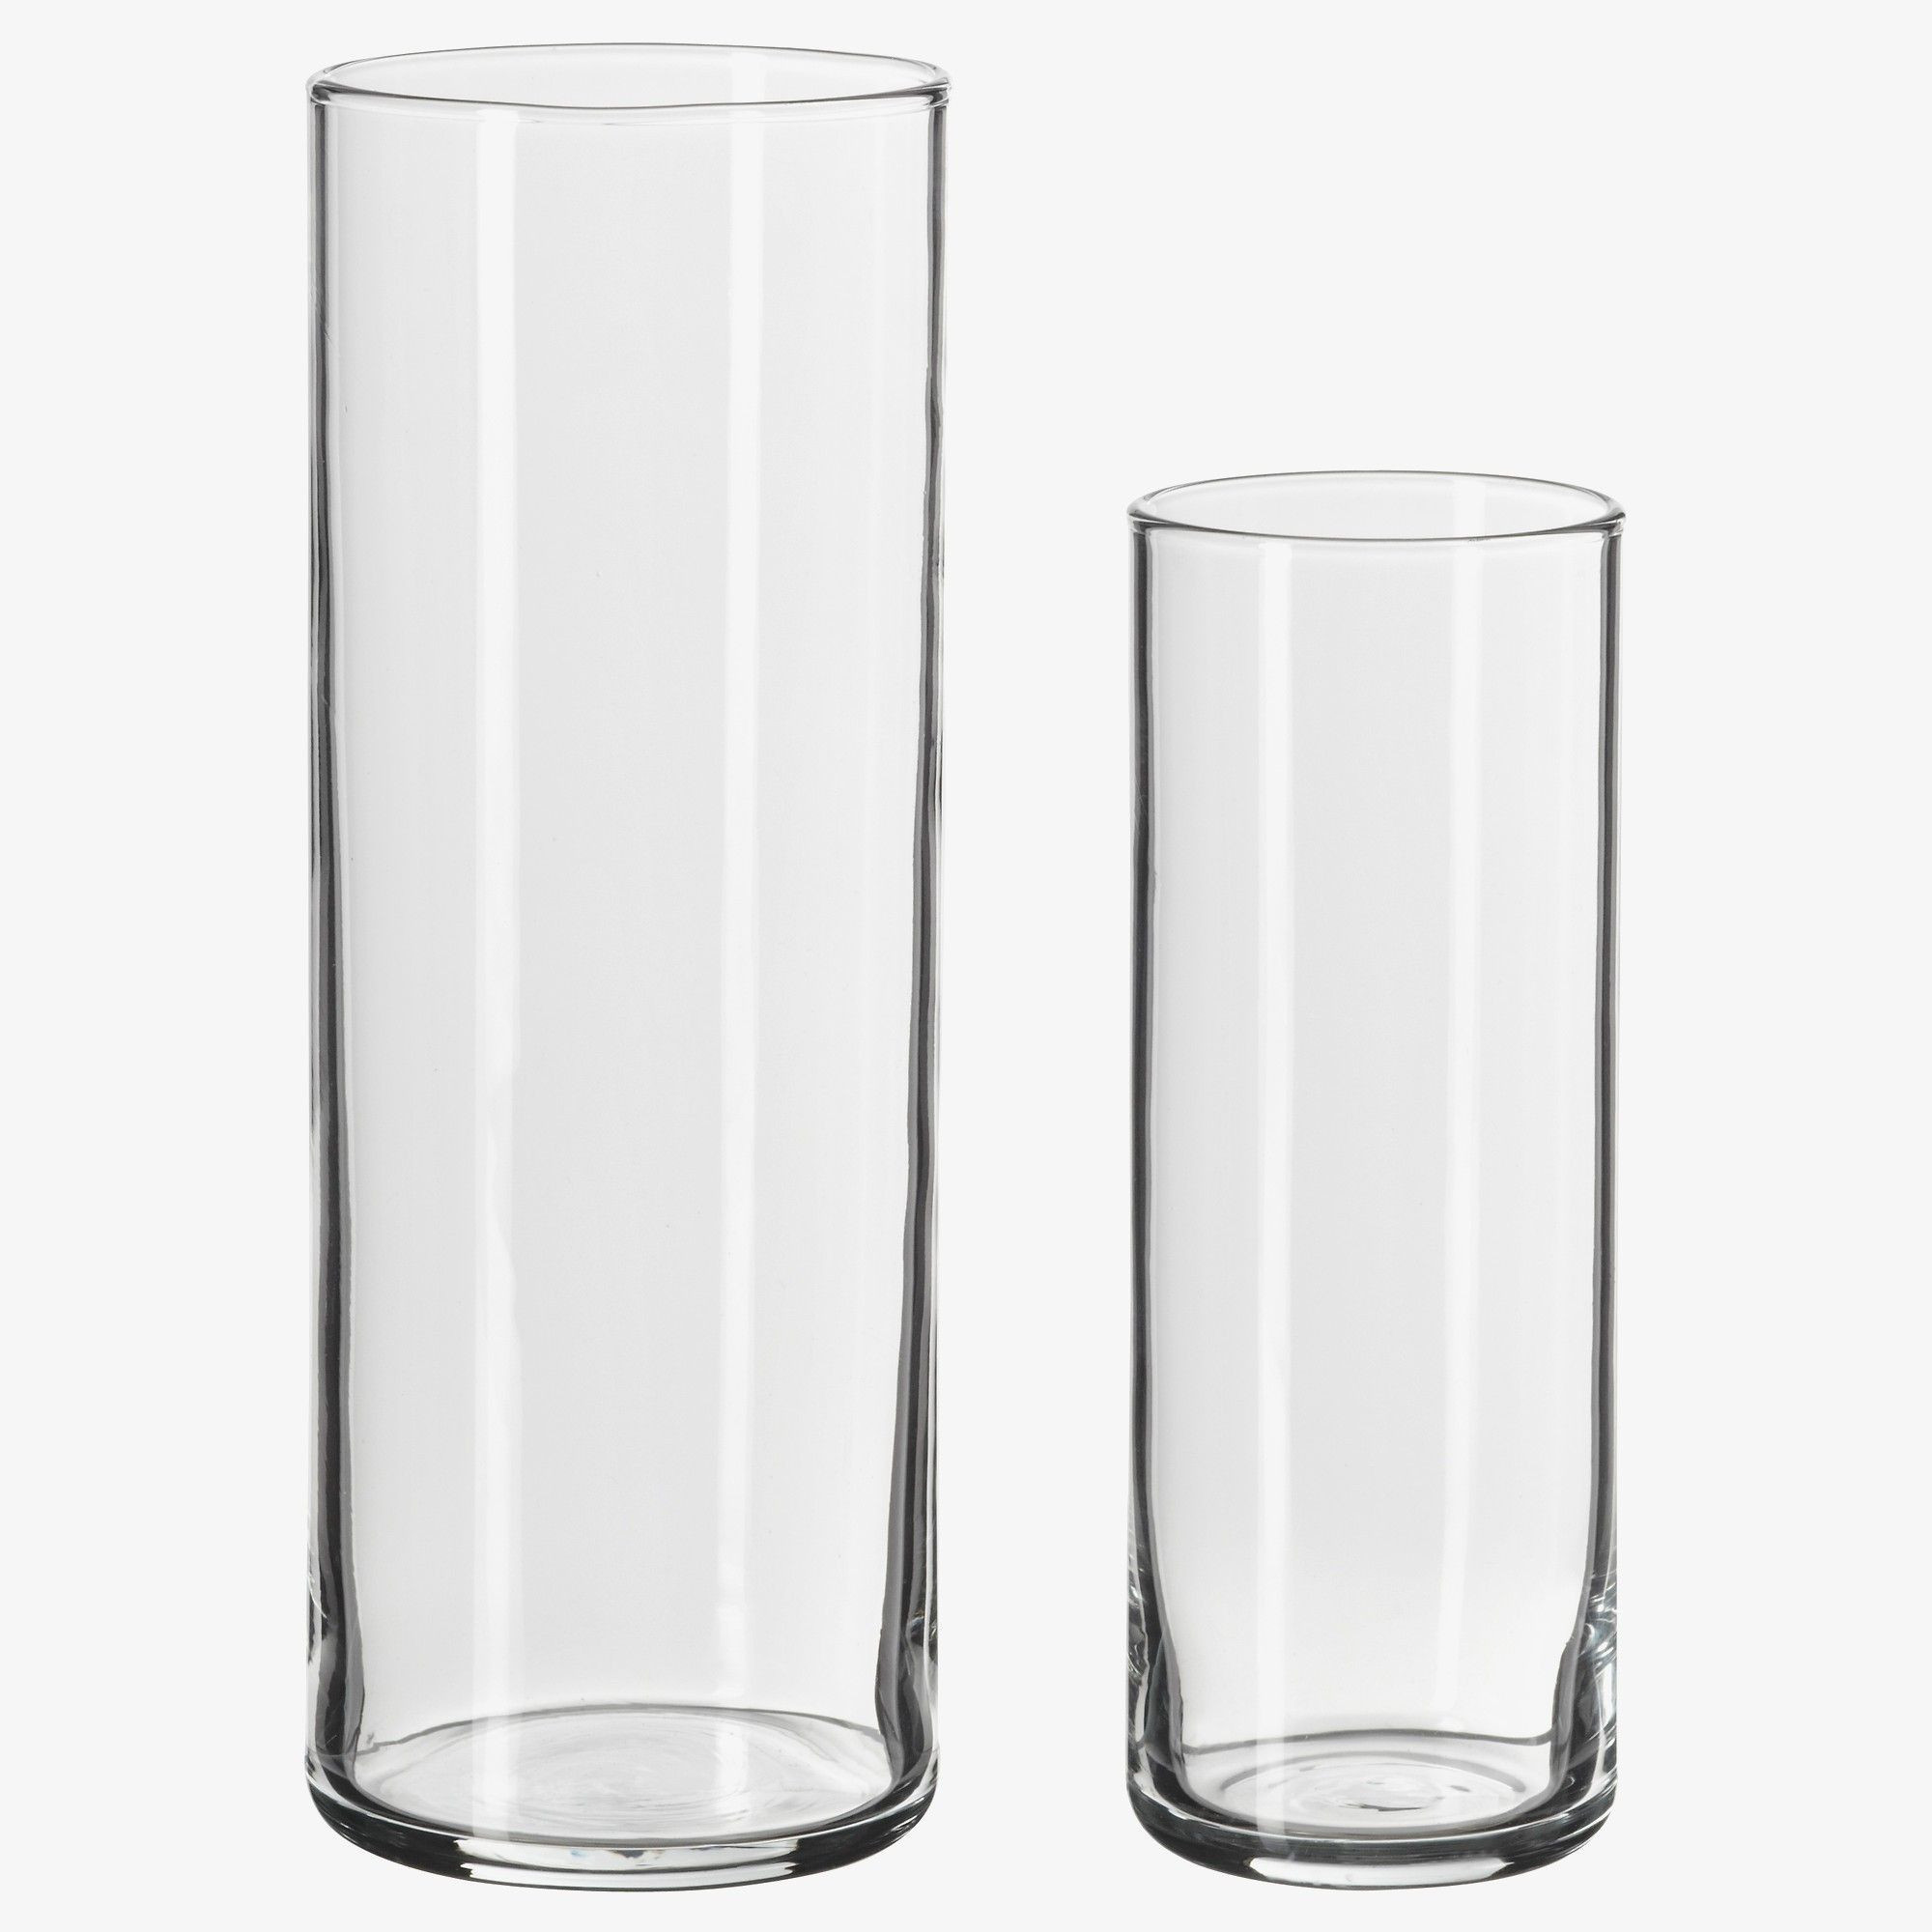 low glass vase of 40 glass vases bulk the weekly world in clear glass tv stand charming new design ikea mantel great pe s5h